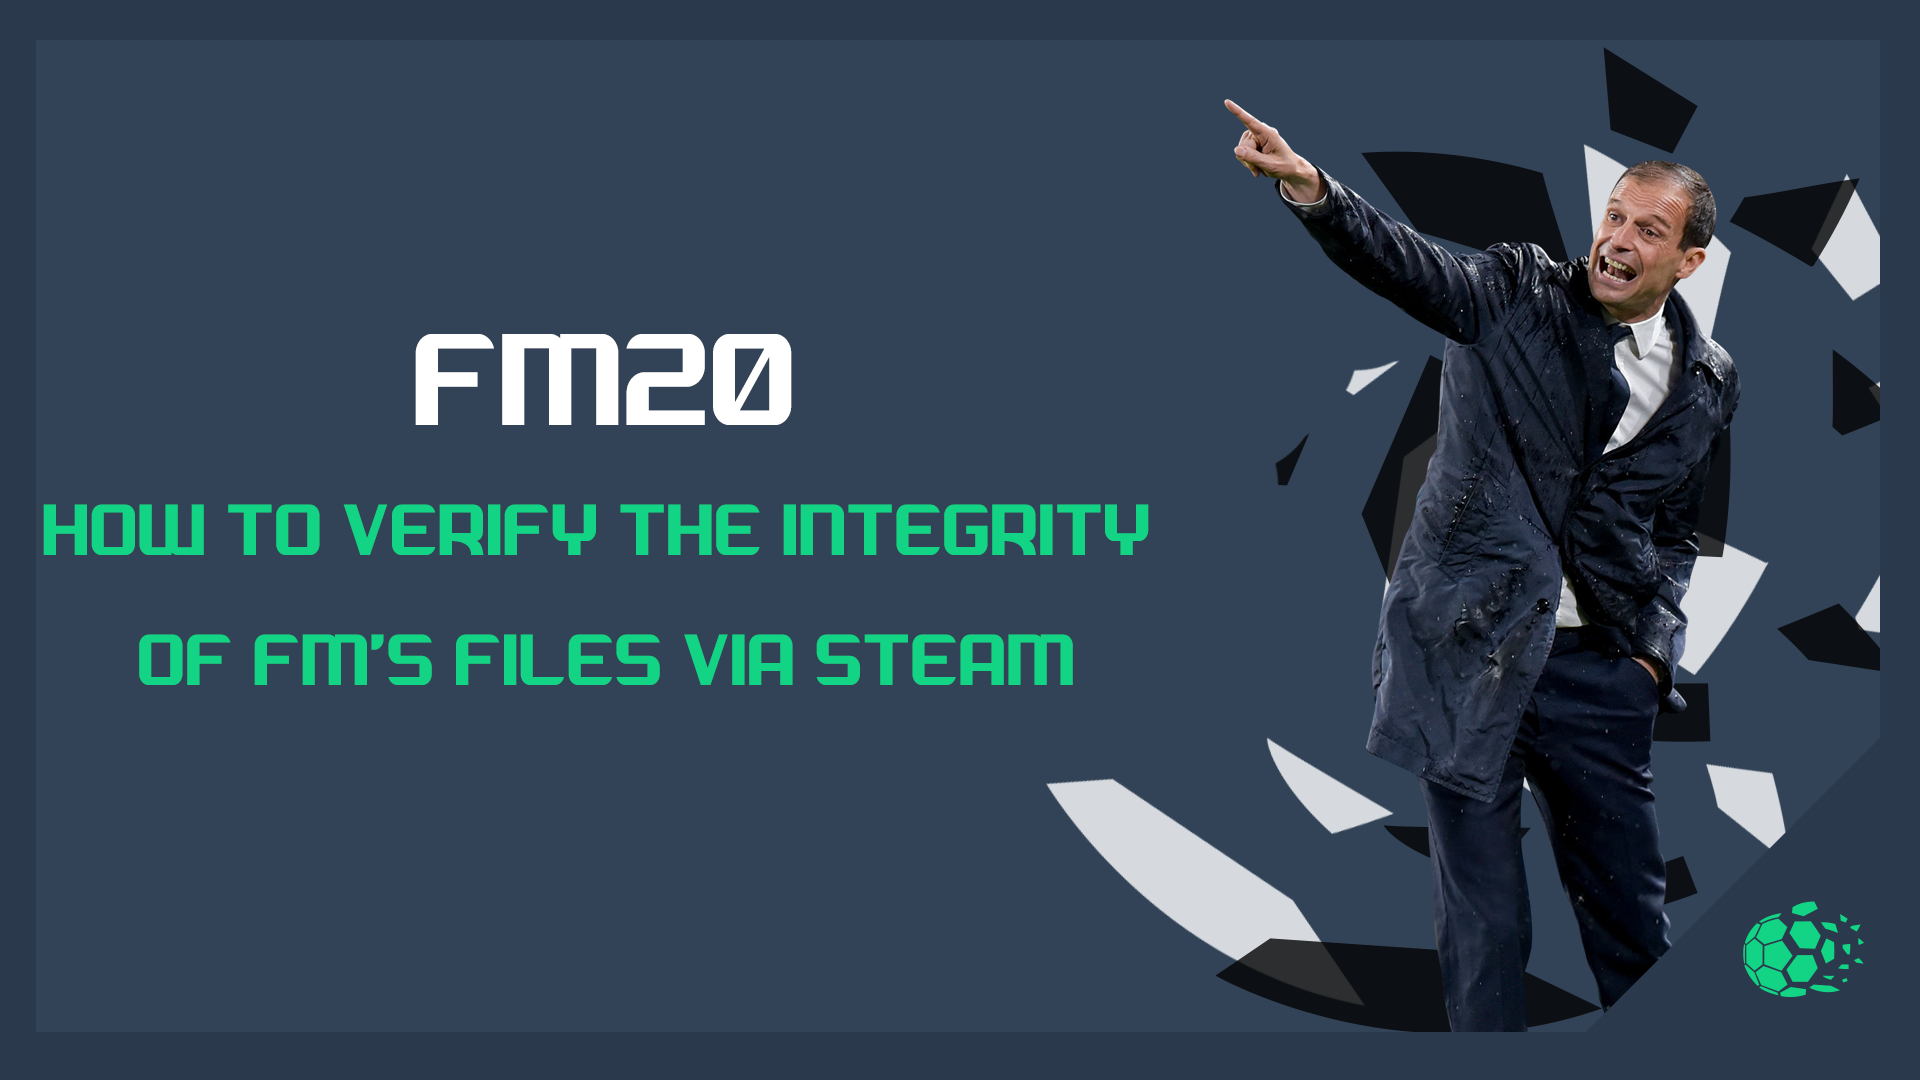 """FM20 FM20: How to Verify the integrity of FM's files via Steam"" feature image"